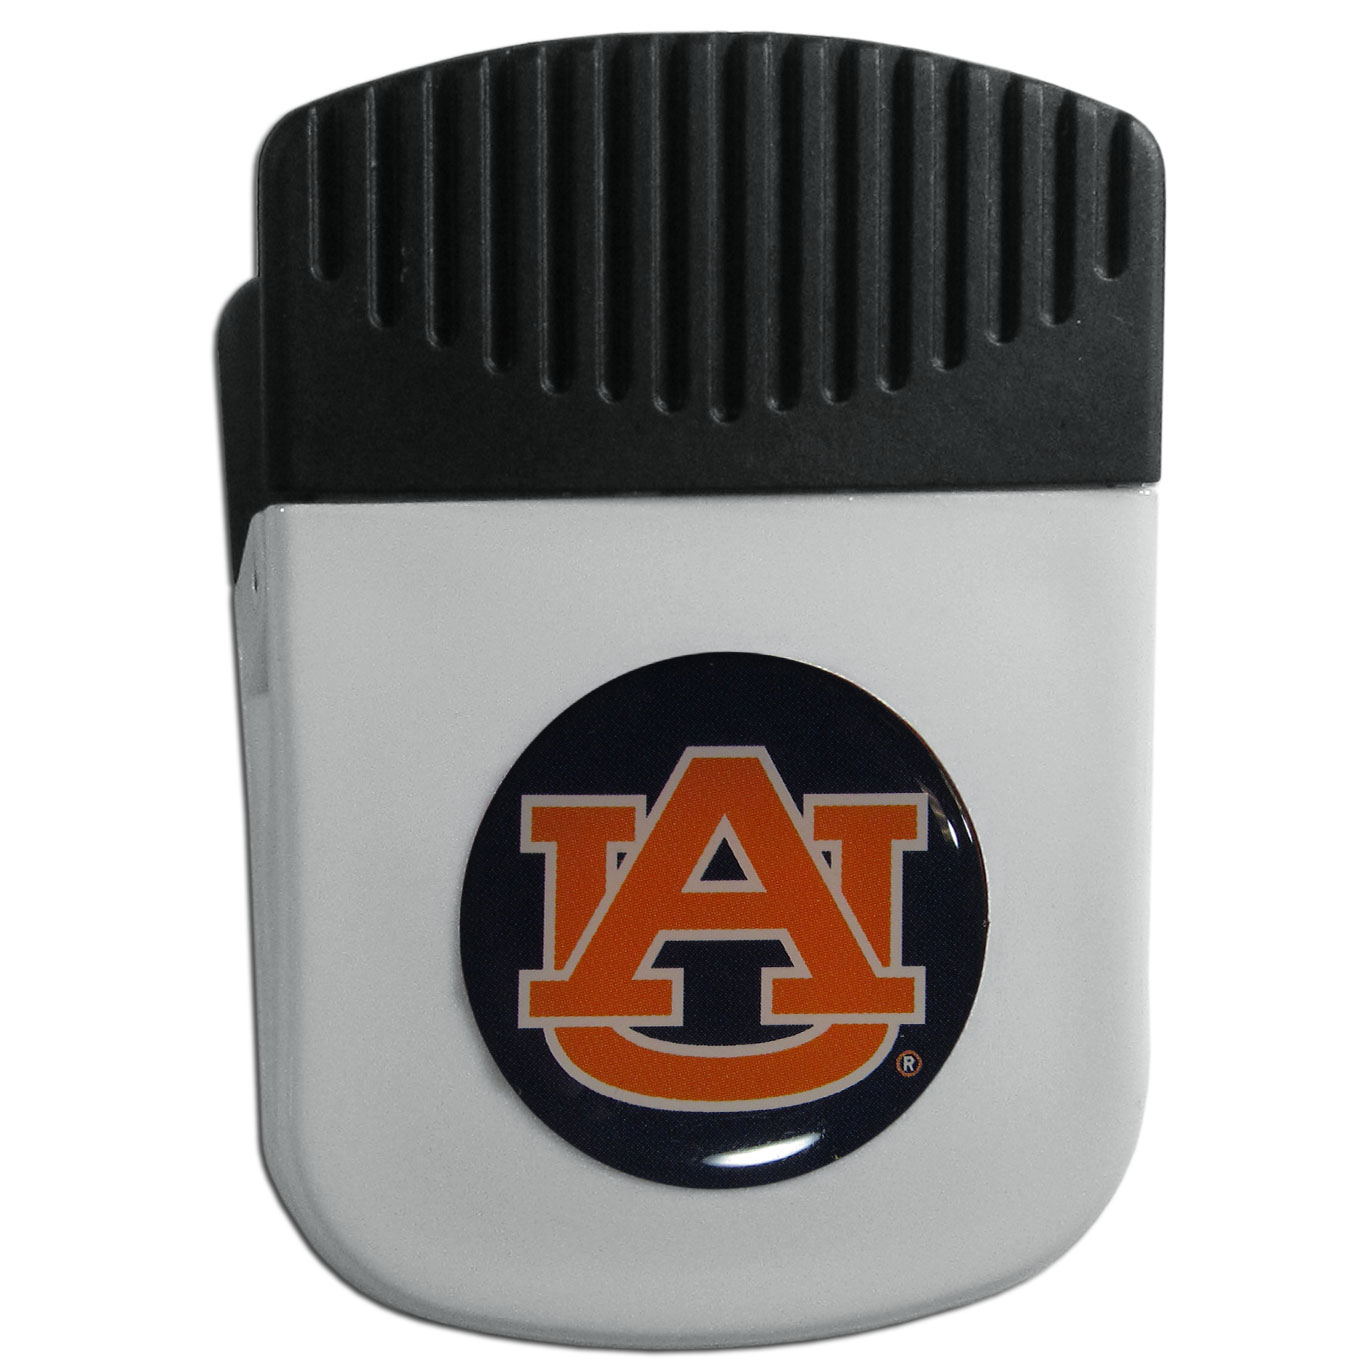 Auburn Tigers Chip Clip Magnet - Use this attractive clip magnet to hold memos, photos or appointment cards on the fridge or take it down keep use it to clip bags shut. The magnet features a domed Auburn Tigers logo.